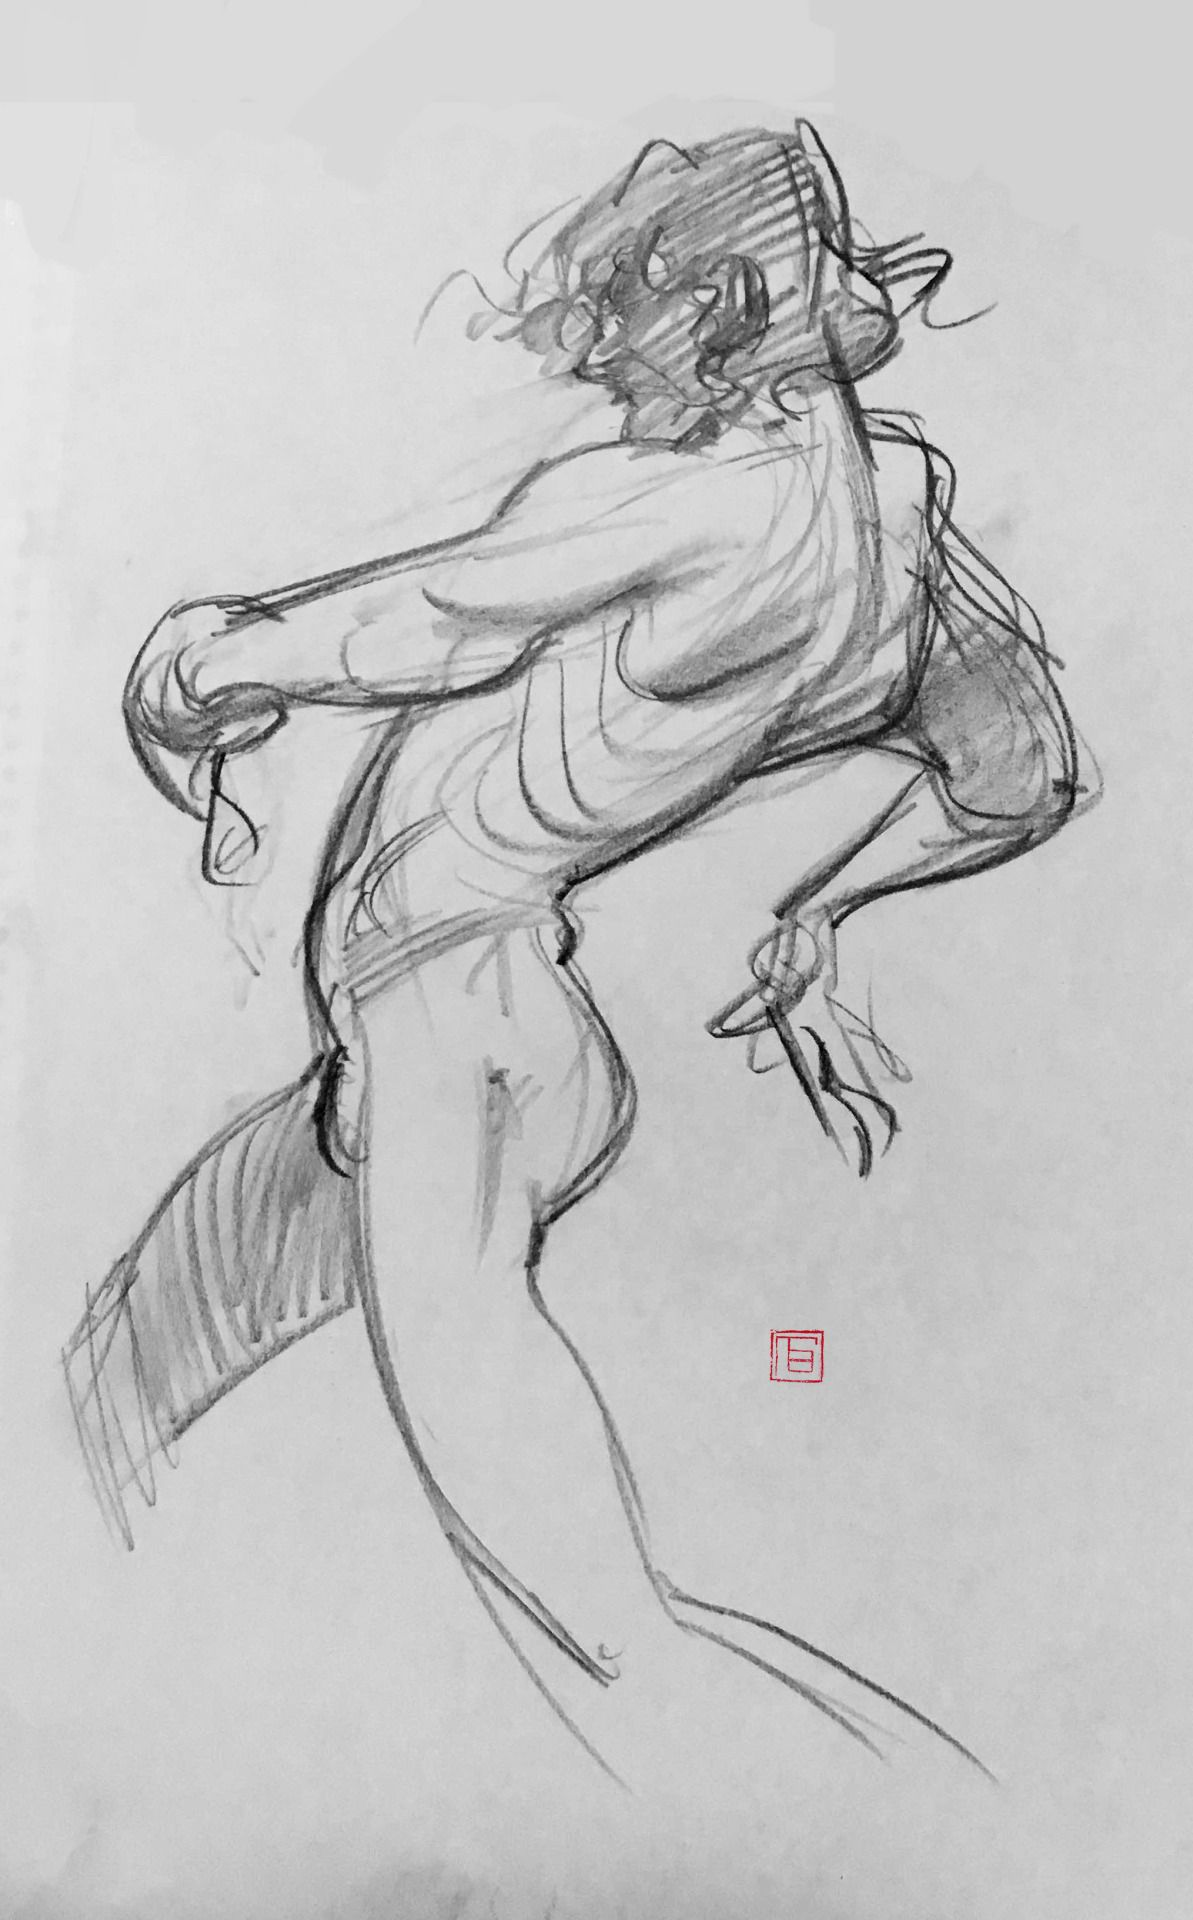 Pin By Jani On Human Pose Gesture Pinterest Drawings Life